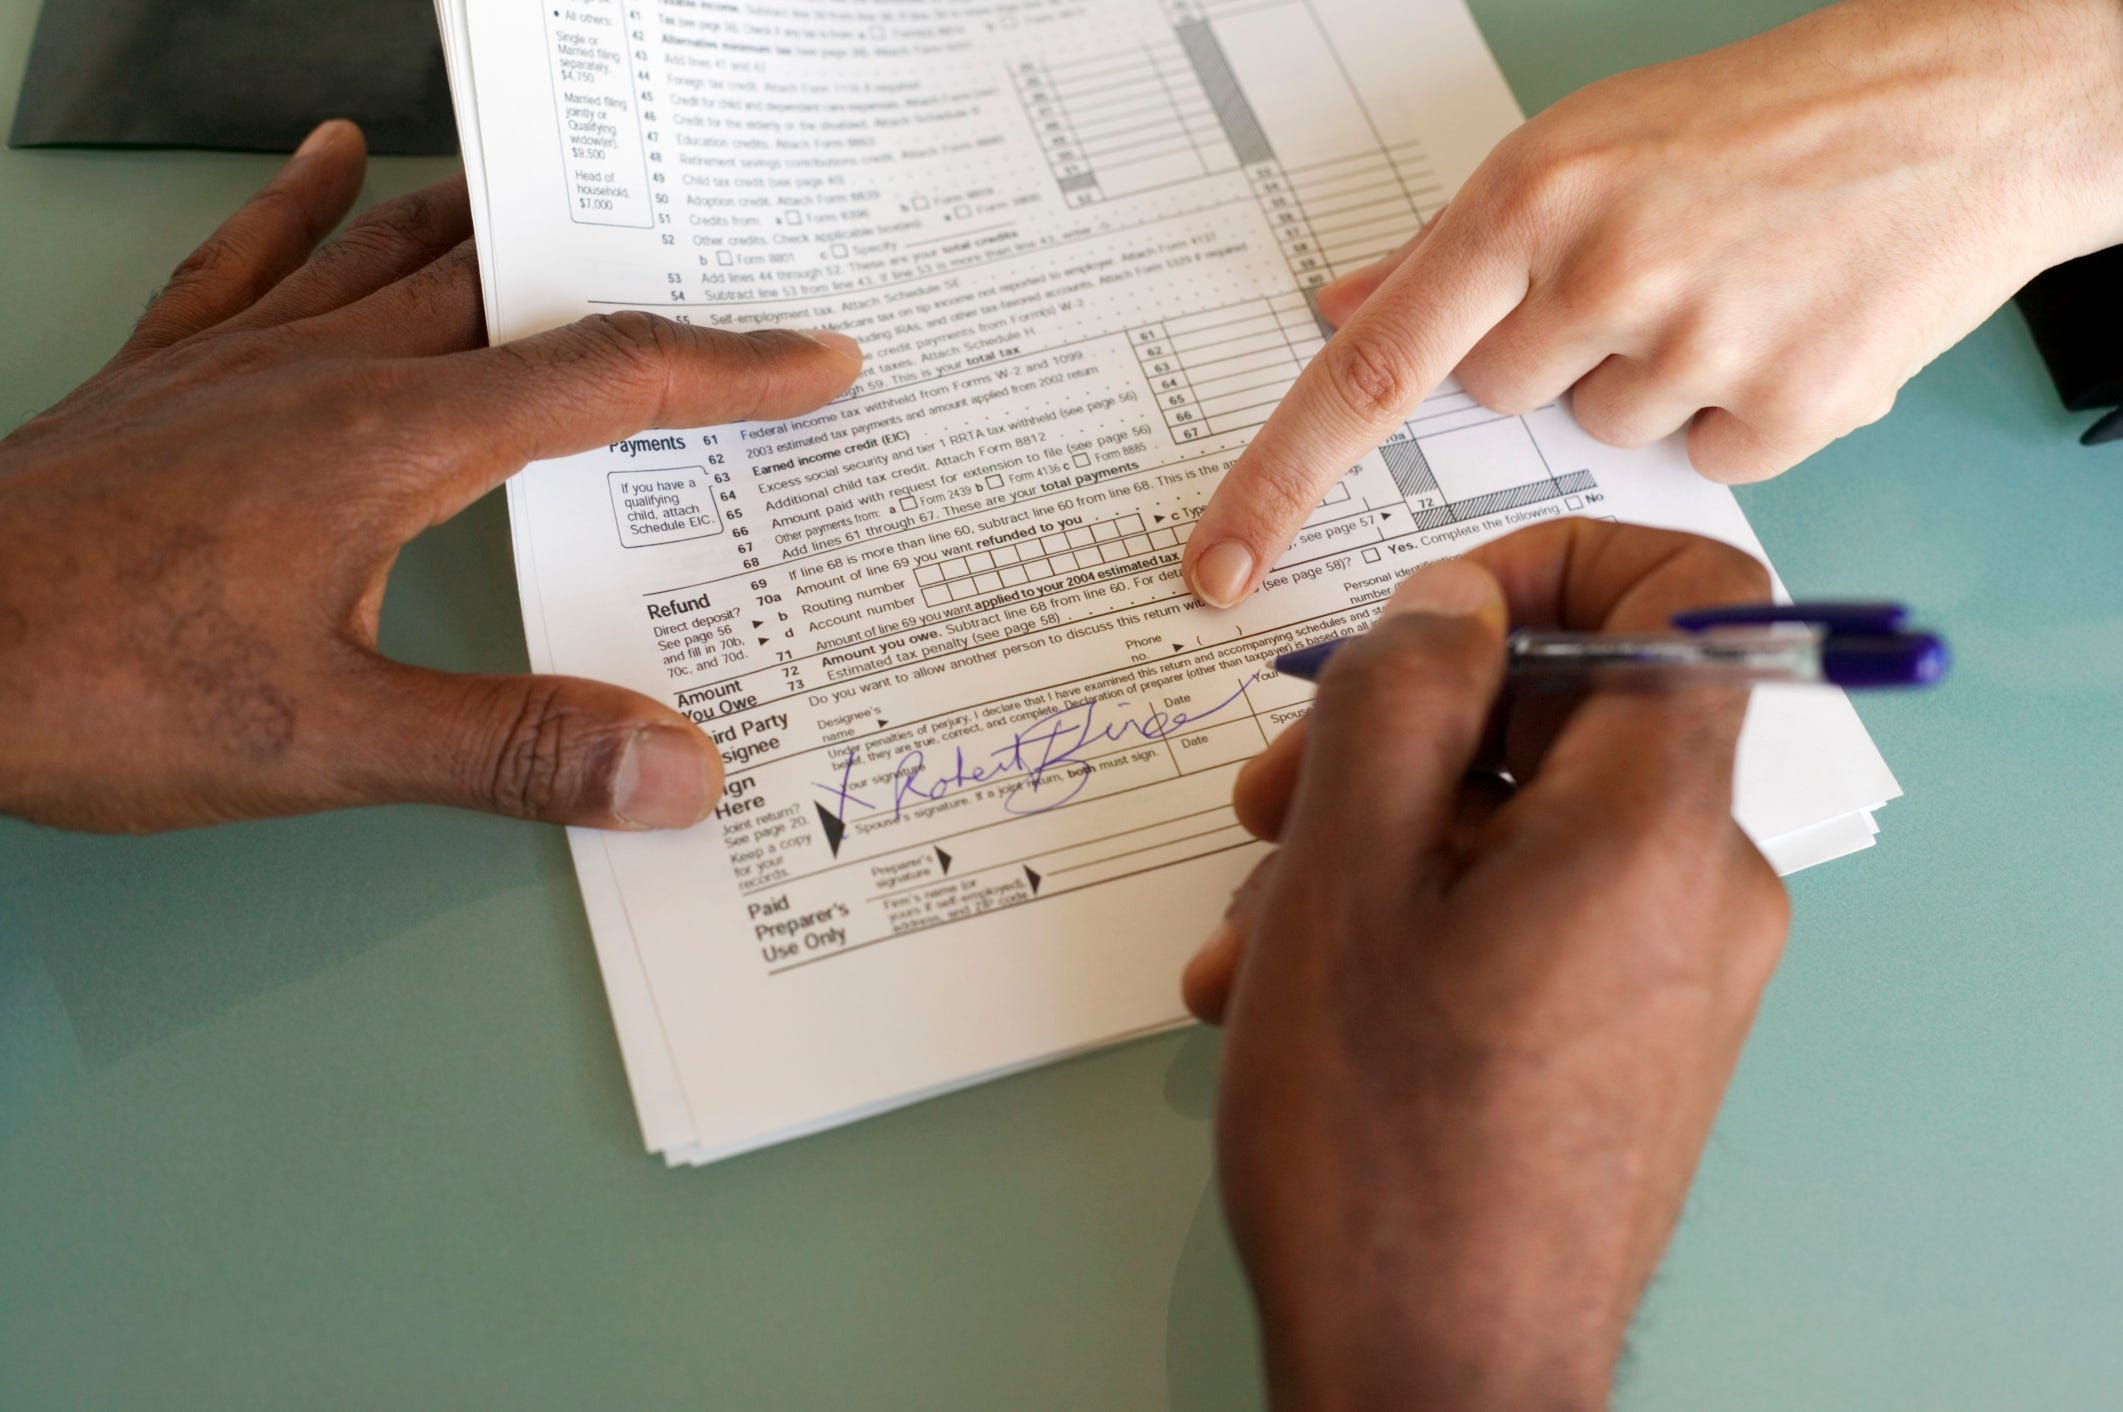 5 tax tips for first time filers